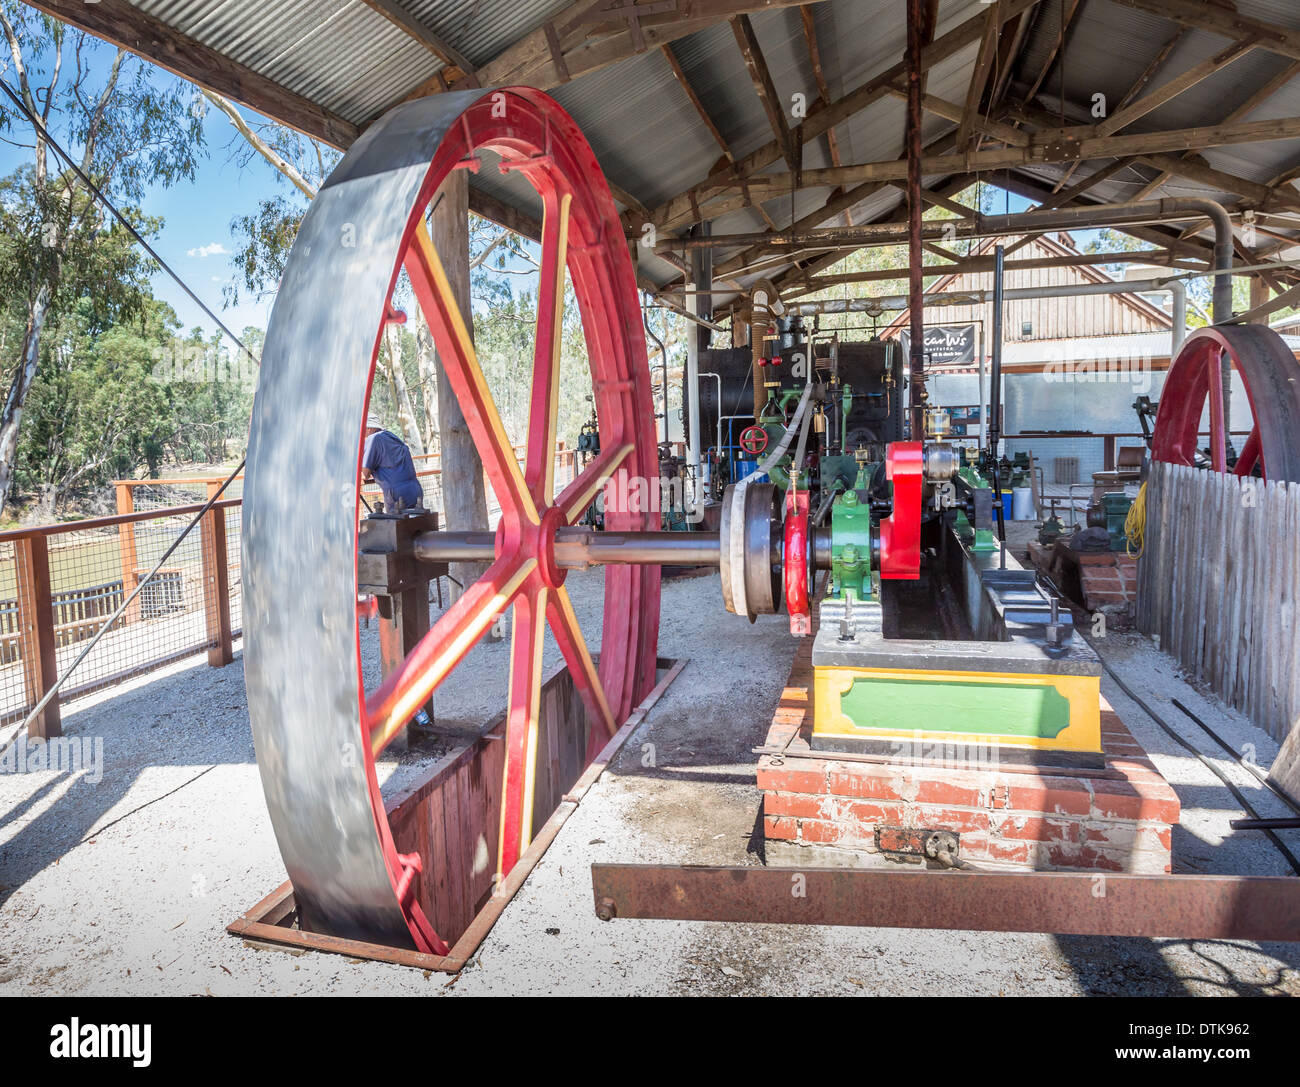 Steam engine house and flywheels at the Historic Port of Echuca precinct on the Murray River, Victoria, Australia - Stock Image